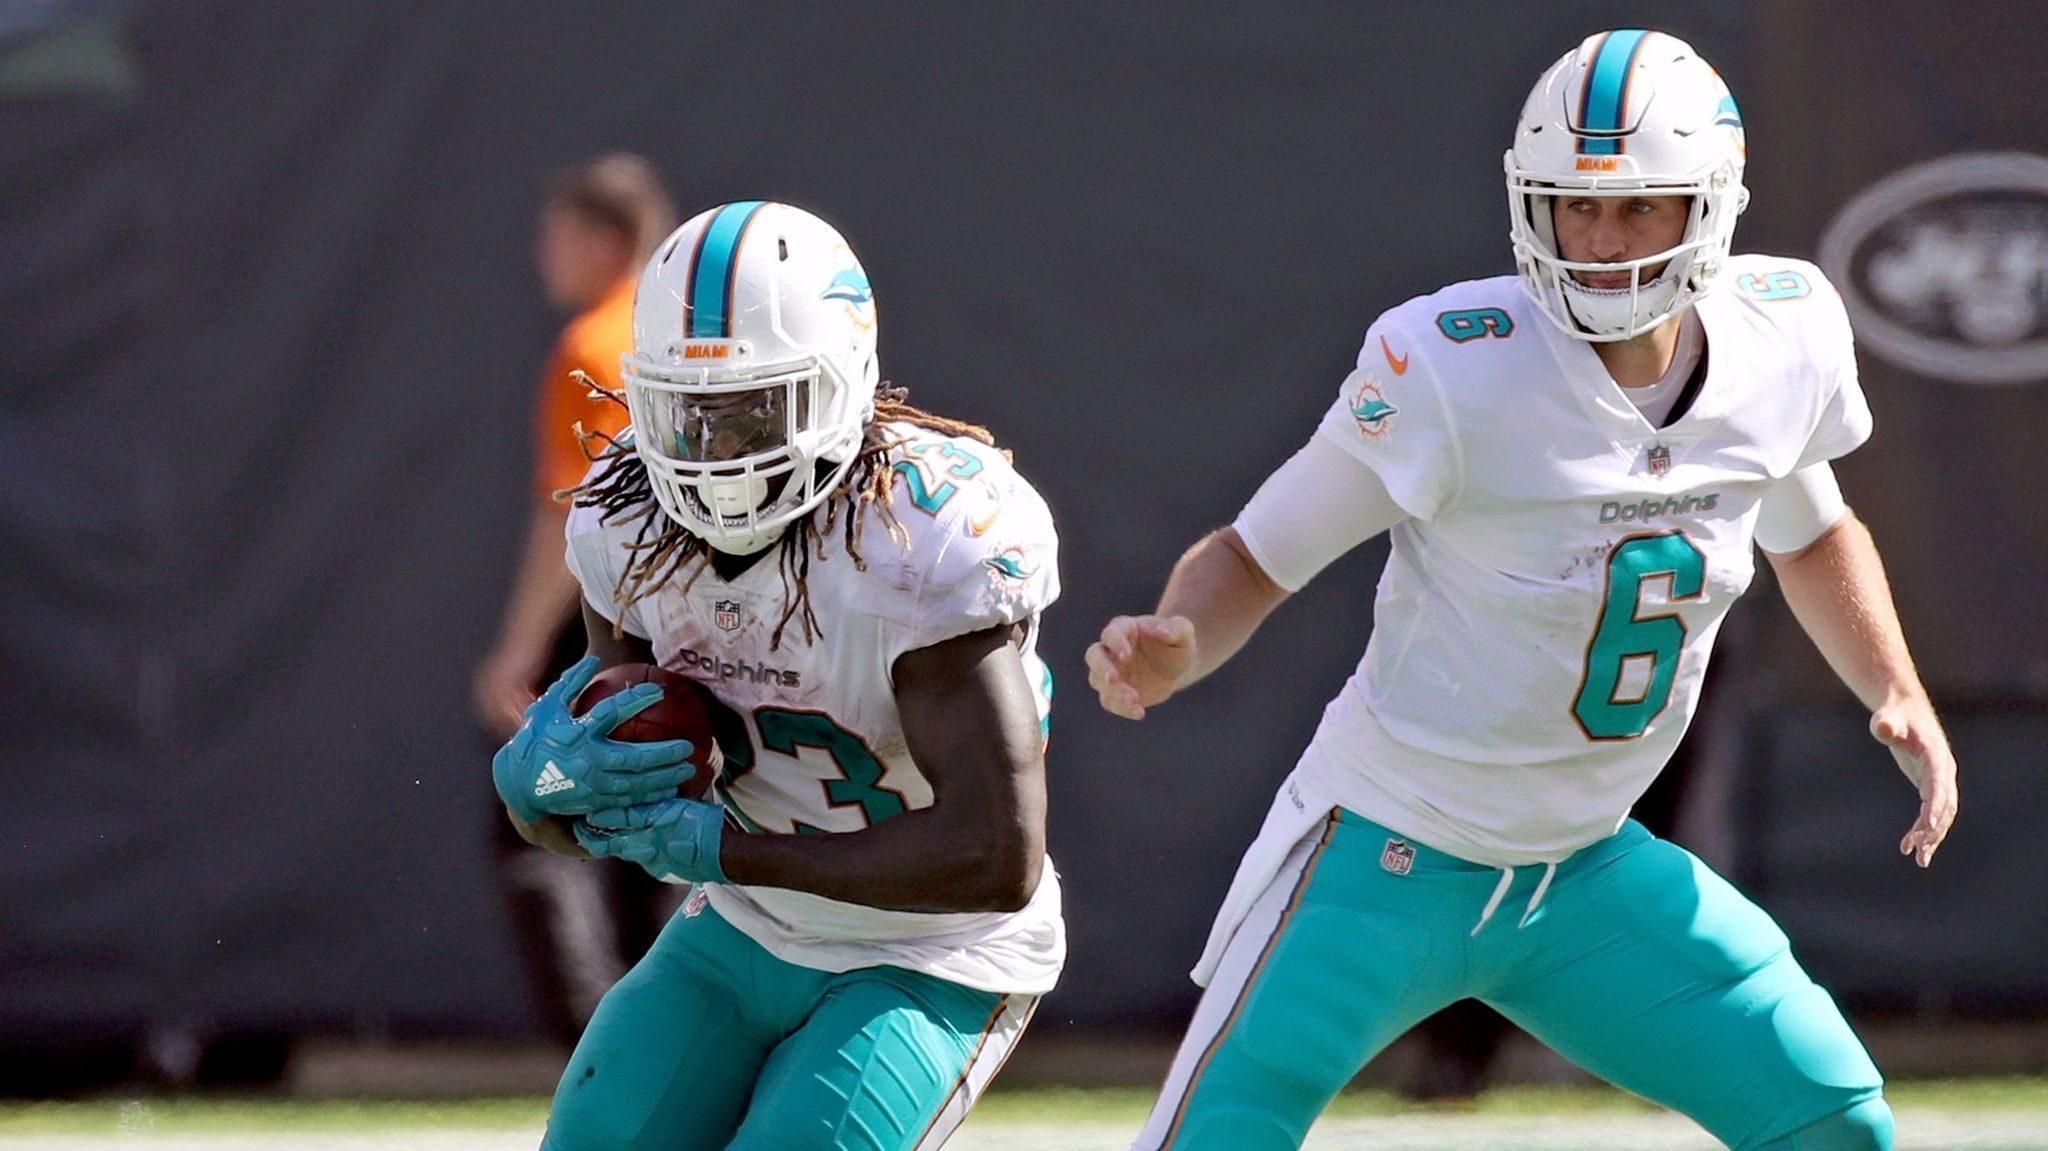 Fl-sp-dolphins-20171021